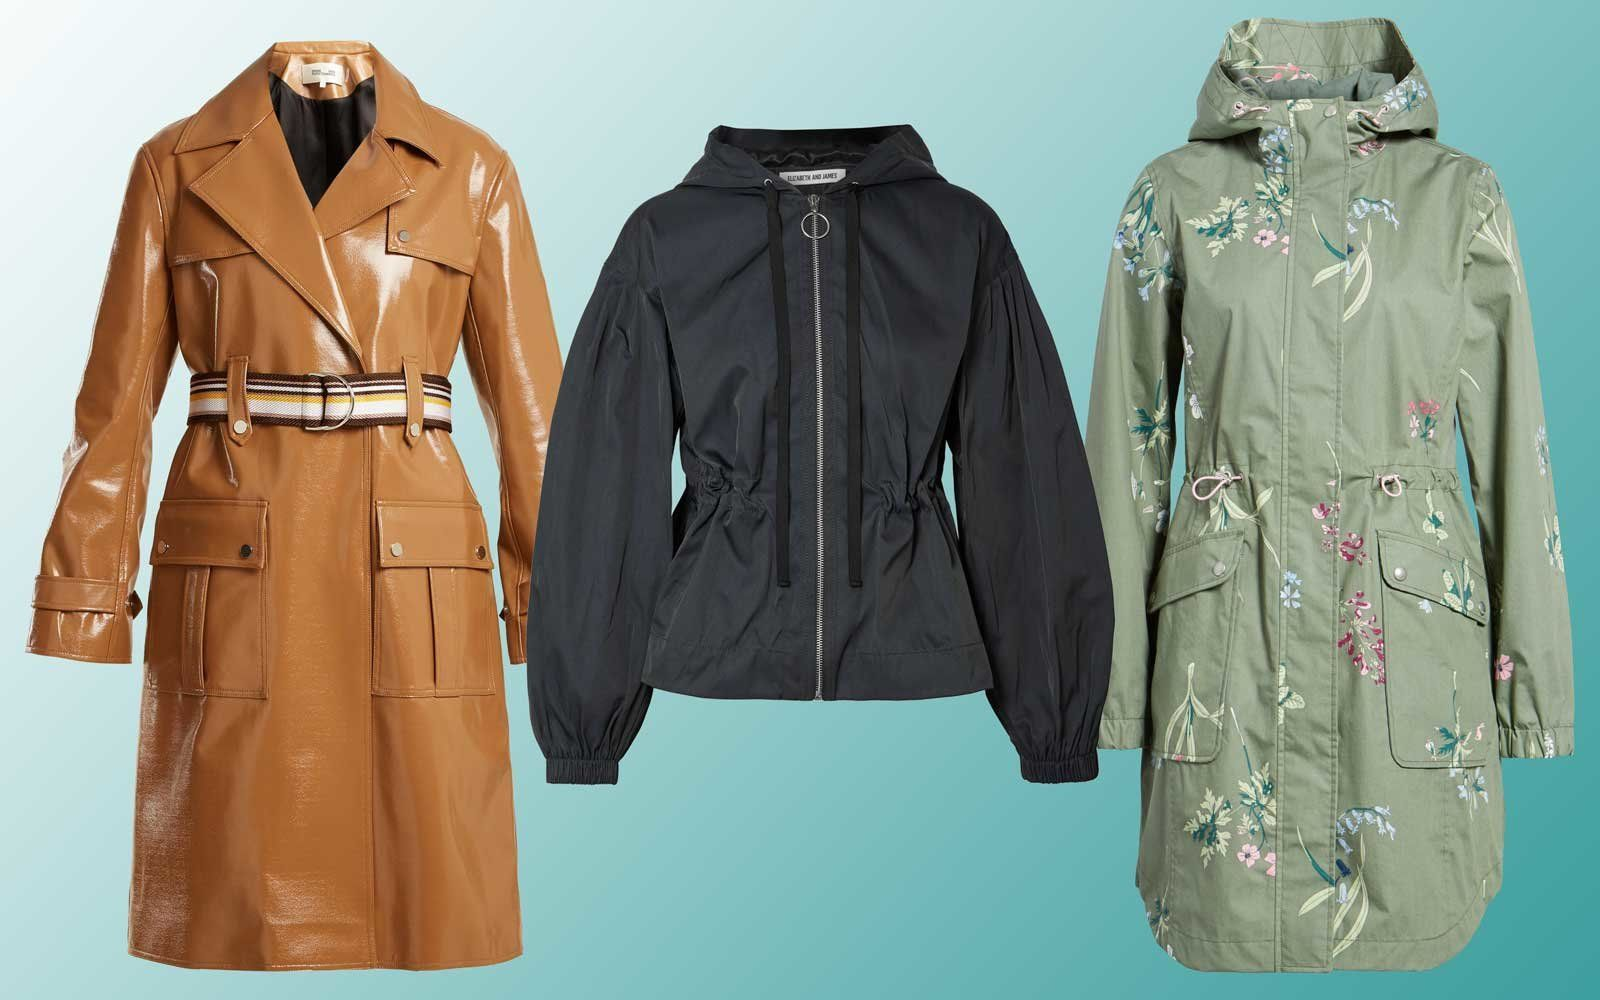 How to trench wear coats this spring best photo